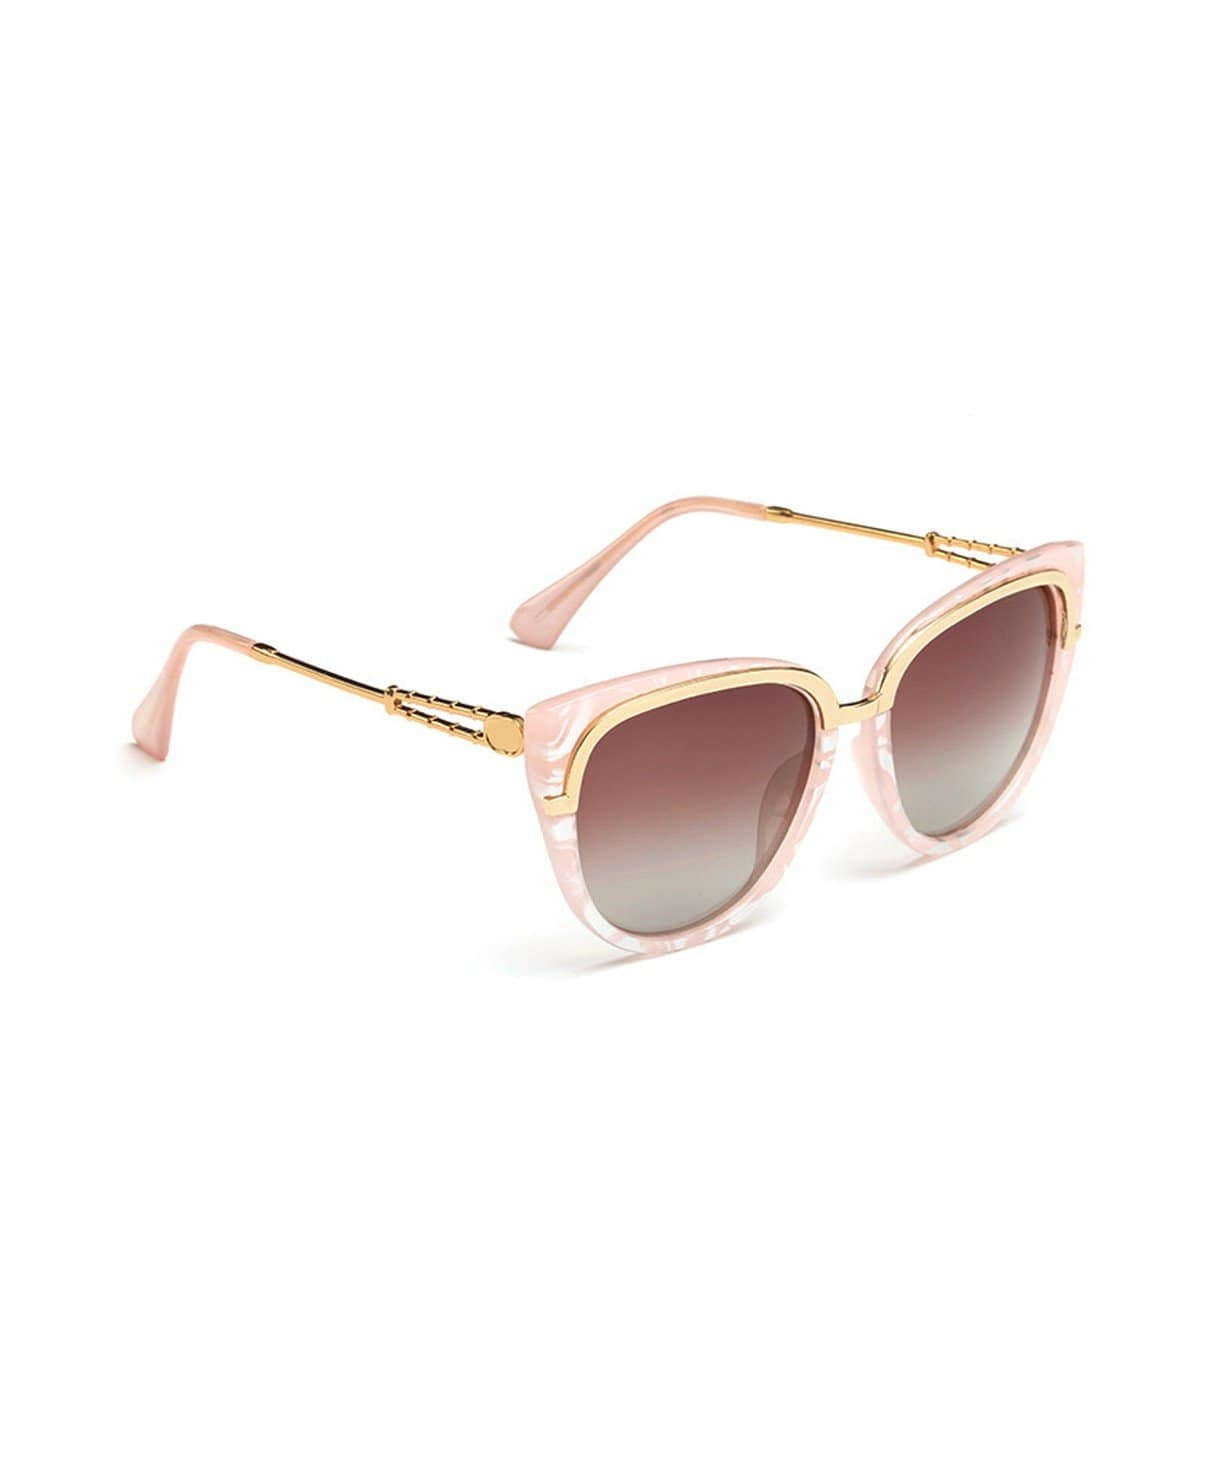 Pastel Love Sunglasses - Uptownie